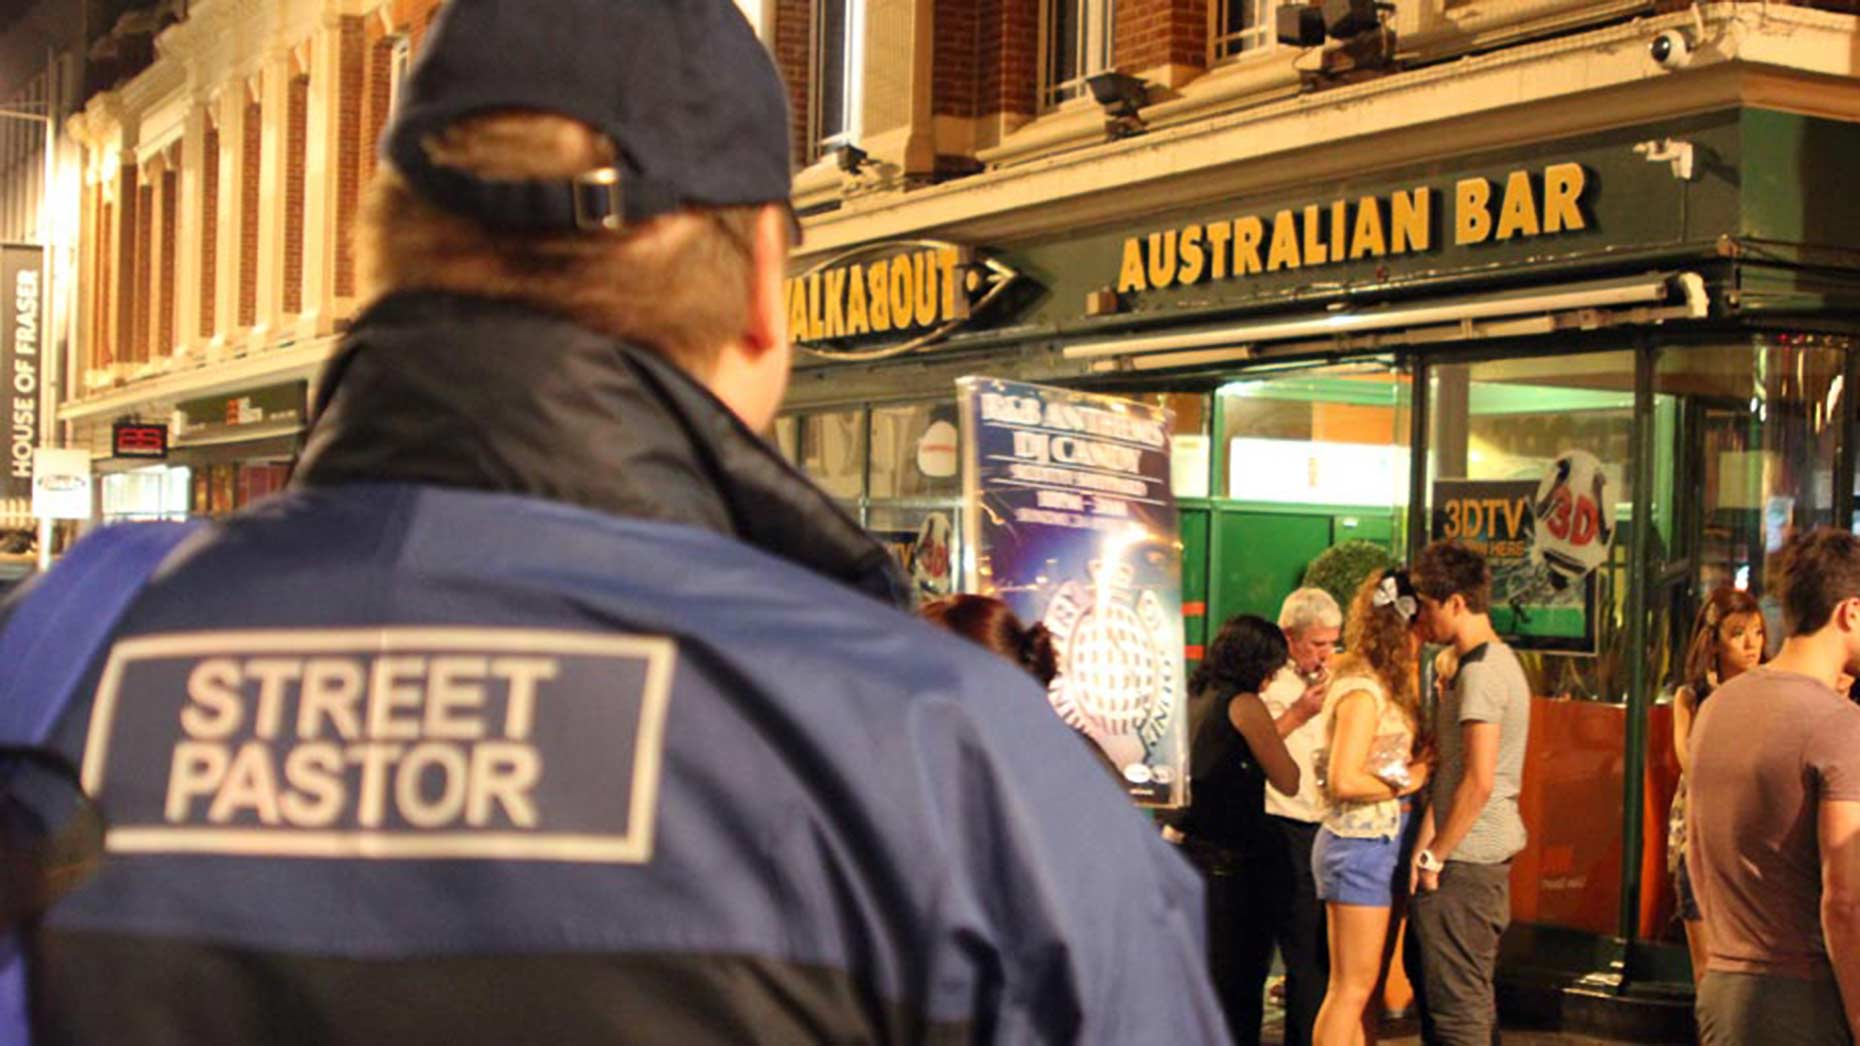 Lincoln Street Pastors are out on Friday and Saturday nights between 10.30pm and 4am.